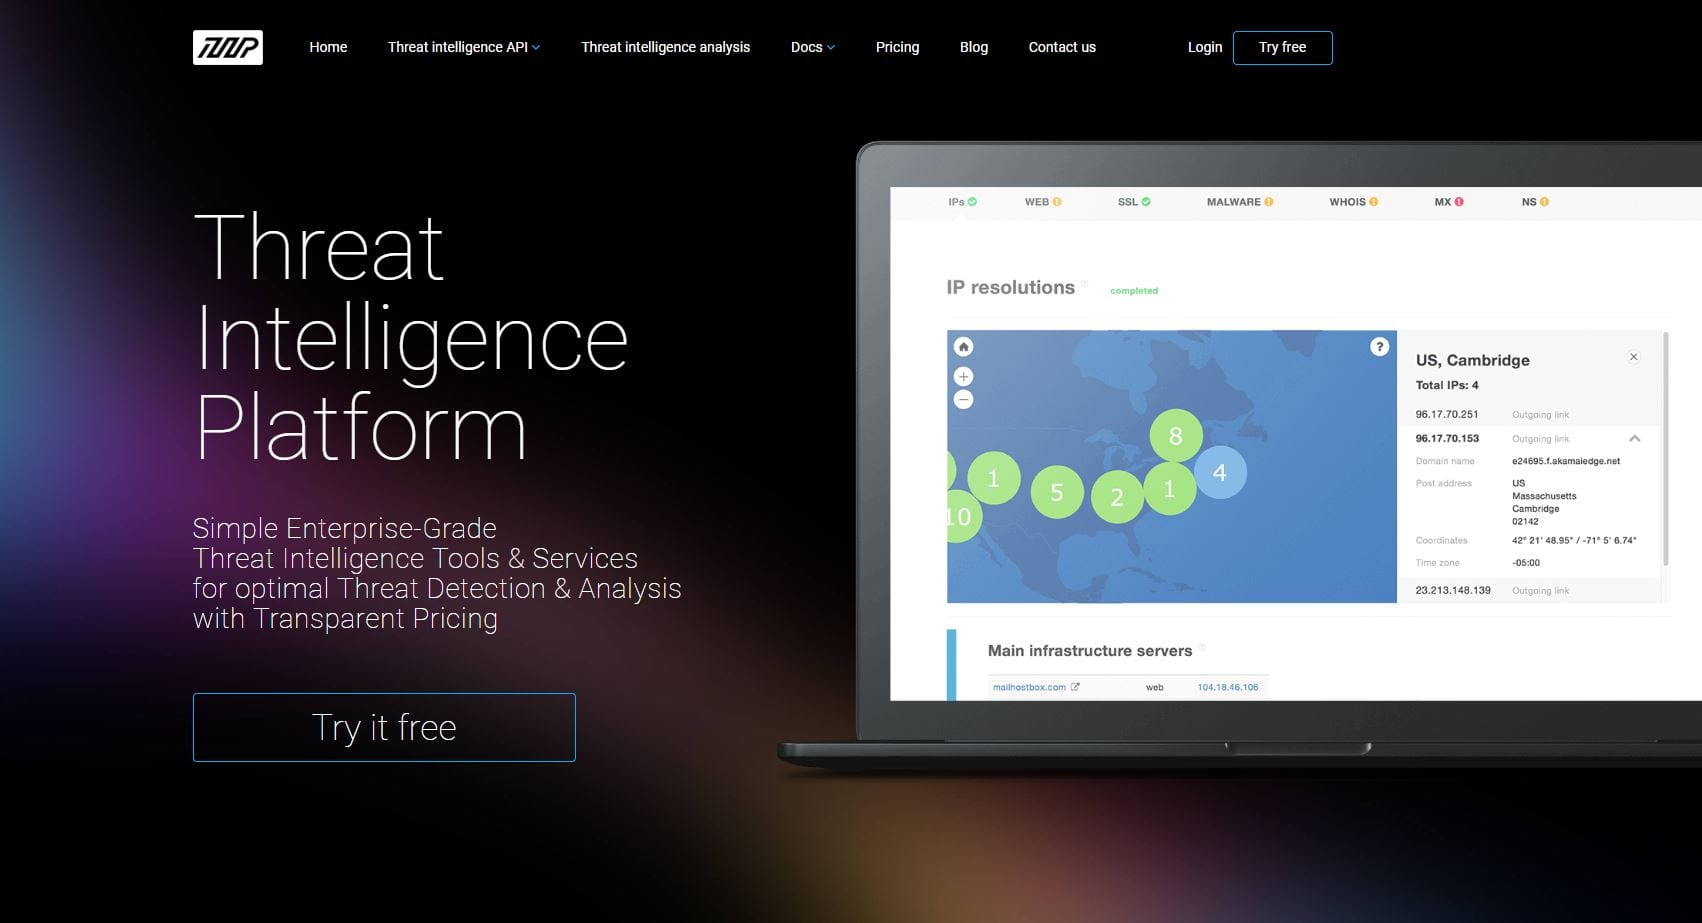 - thumb 1 - Threat Intelligence Platform on War Against Cybercriminals » TechWorm